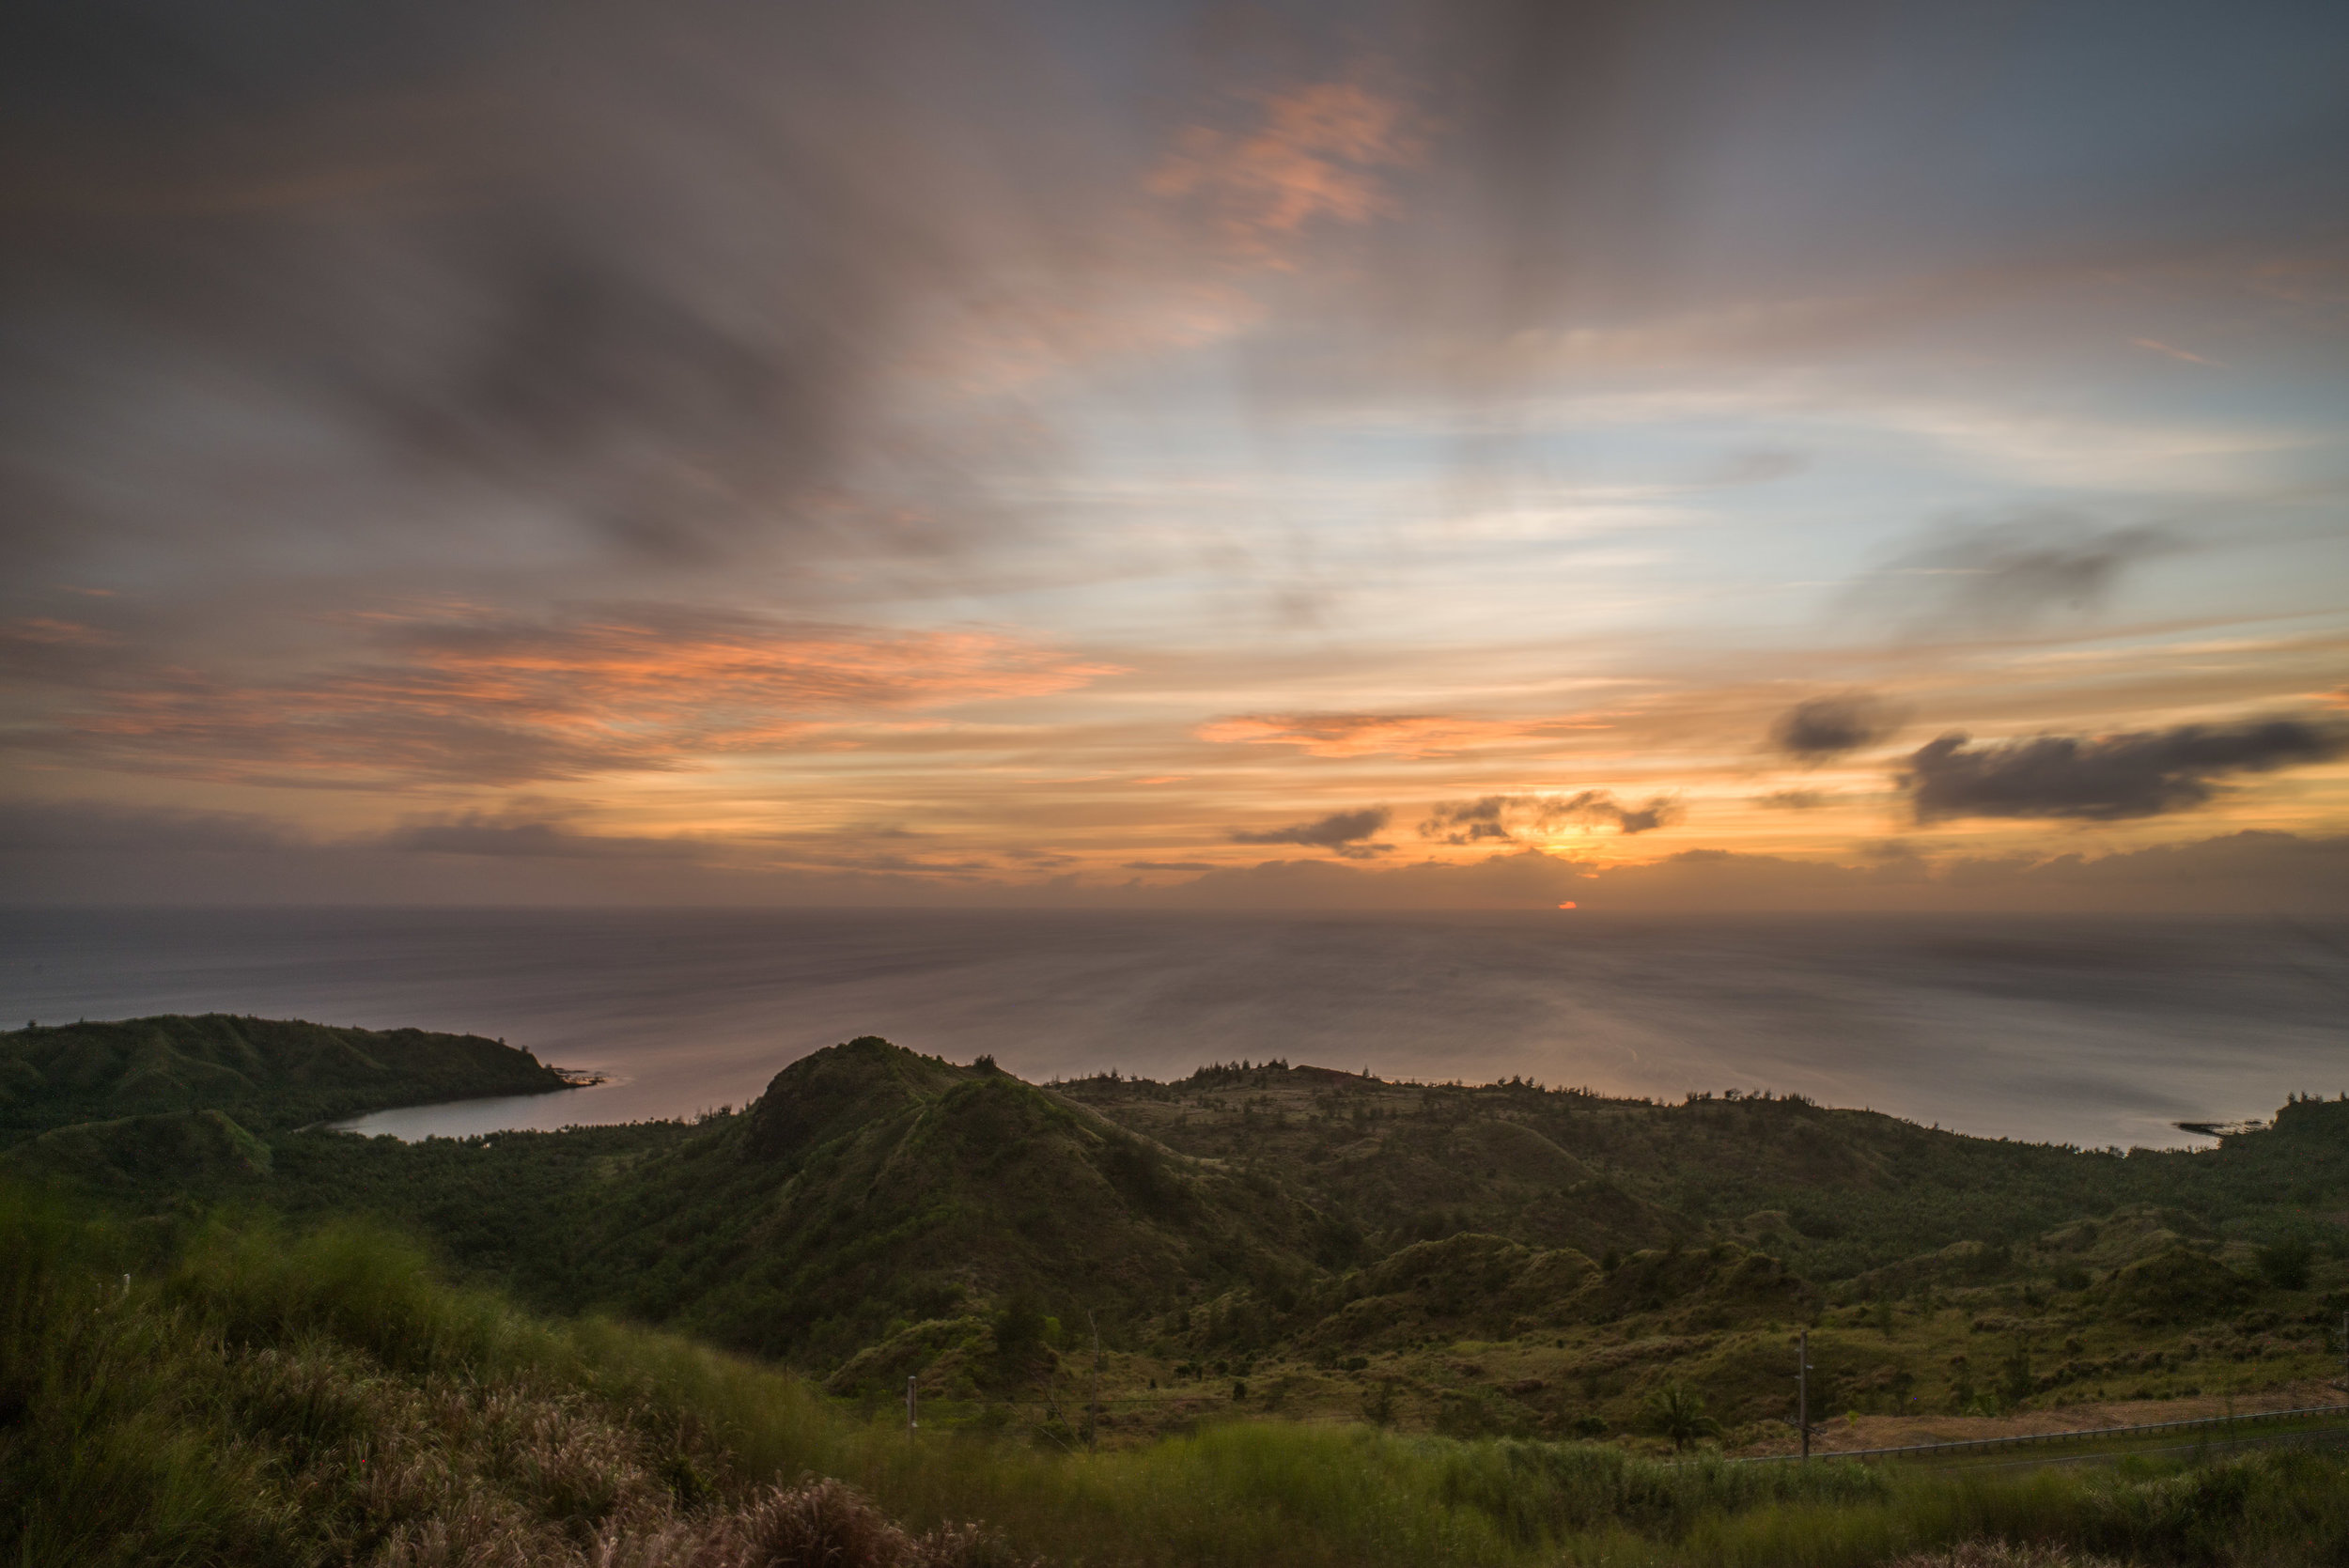 View of Cetti Bay from Mt. Lam Lam, Umatac